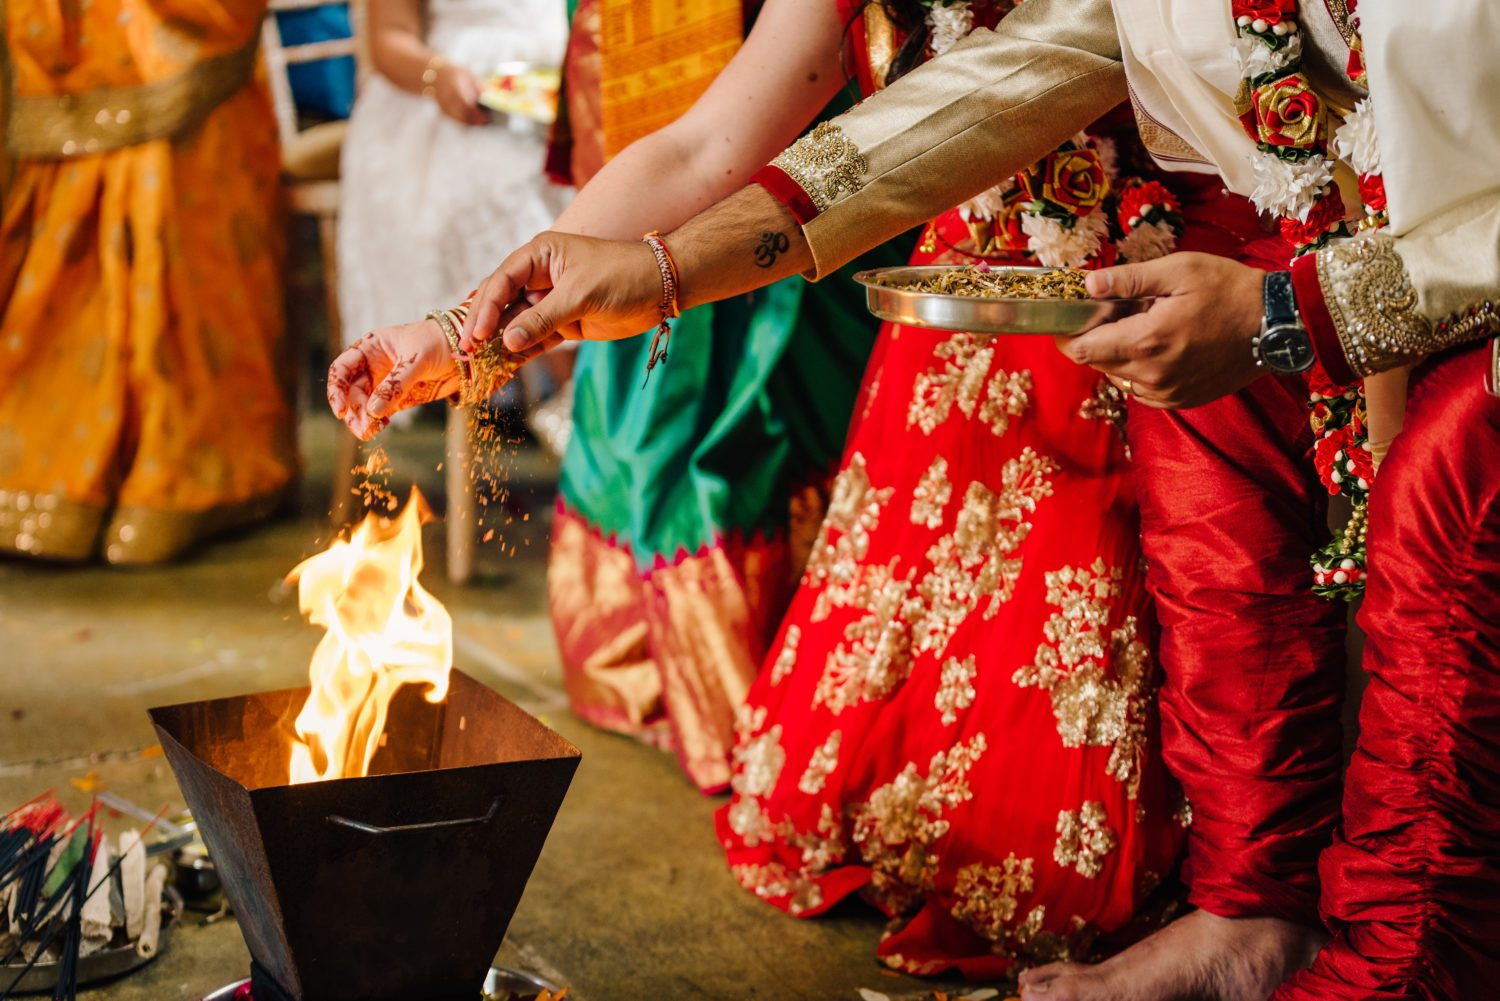 Agni holy fire offerings